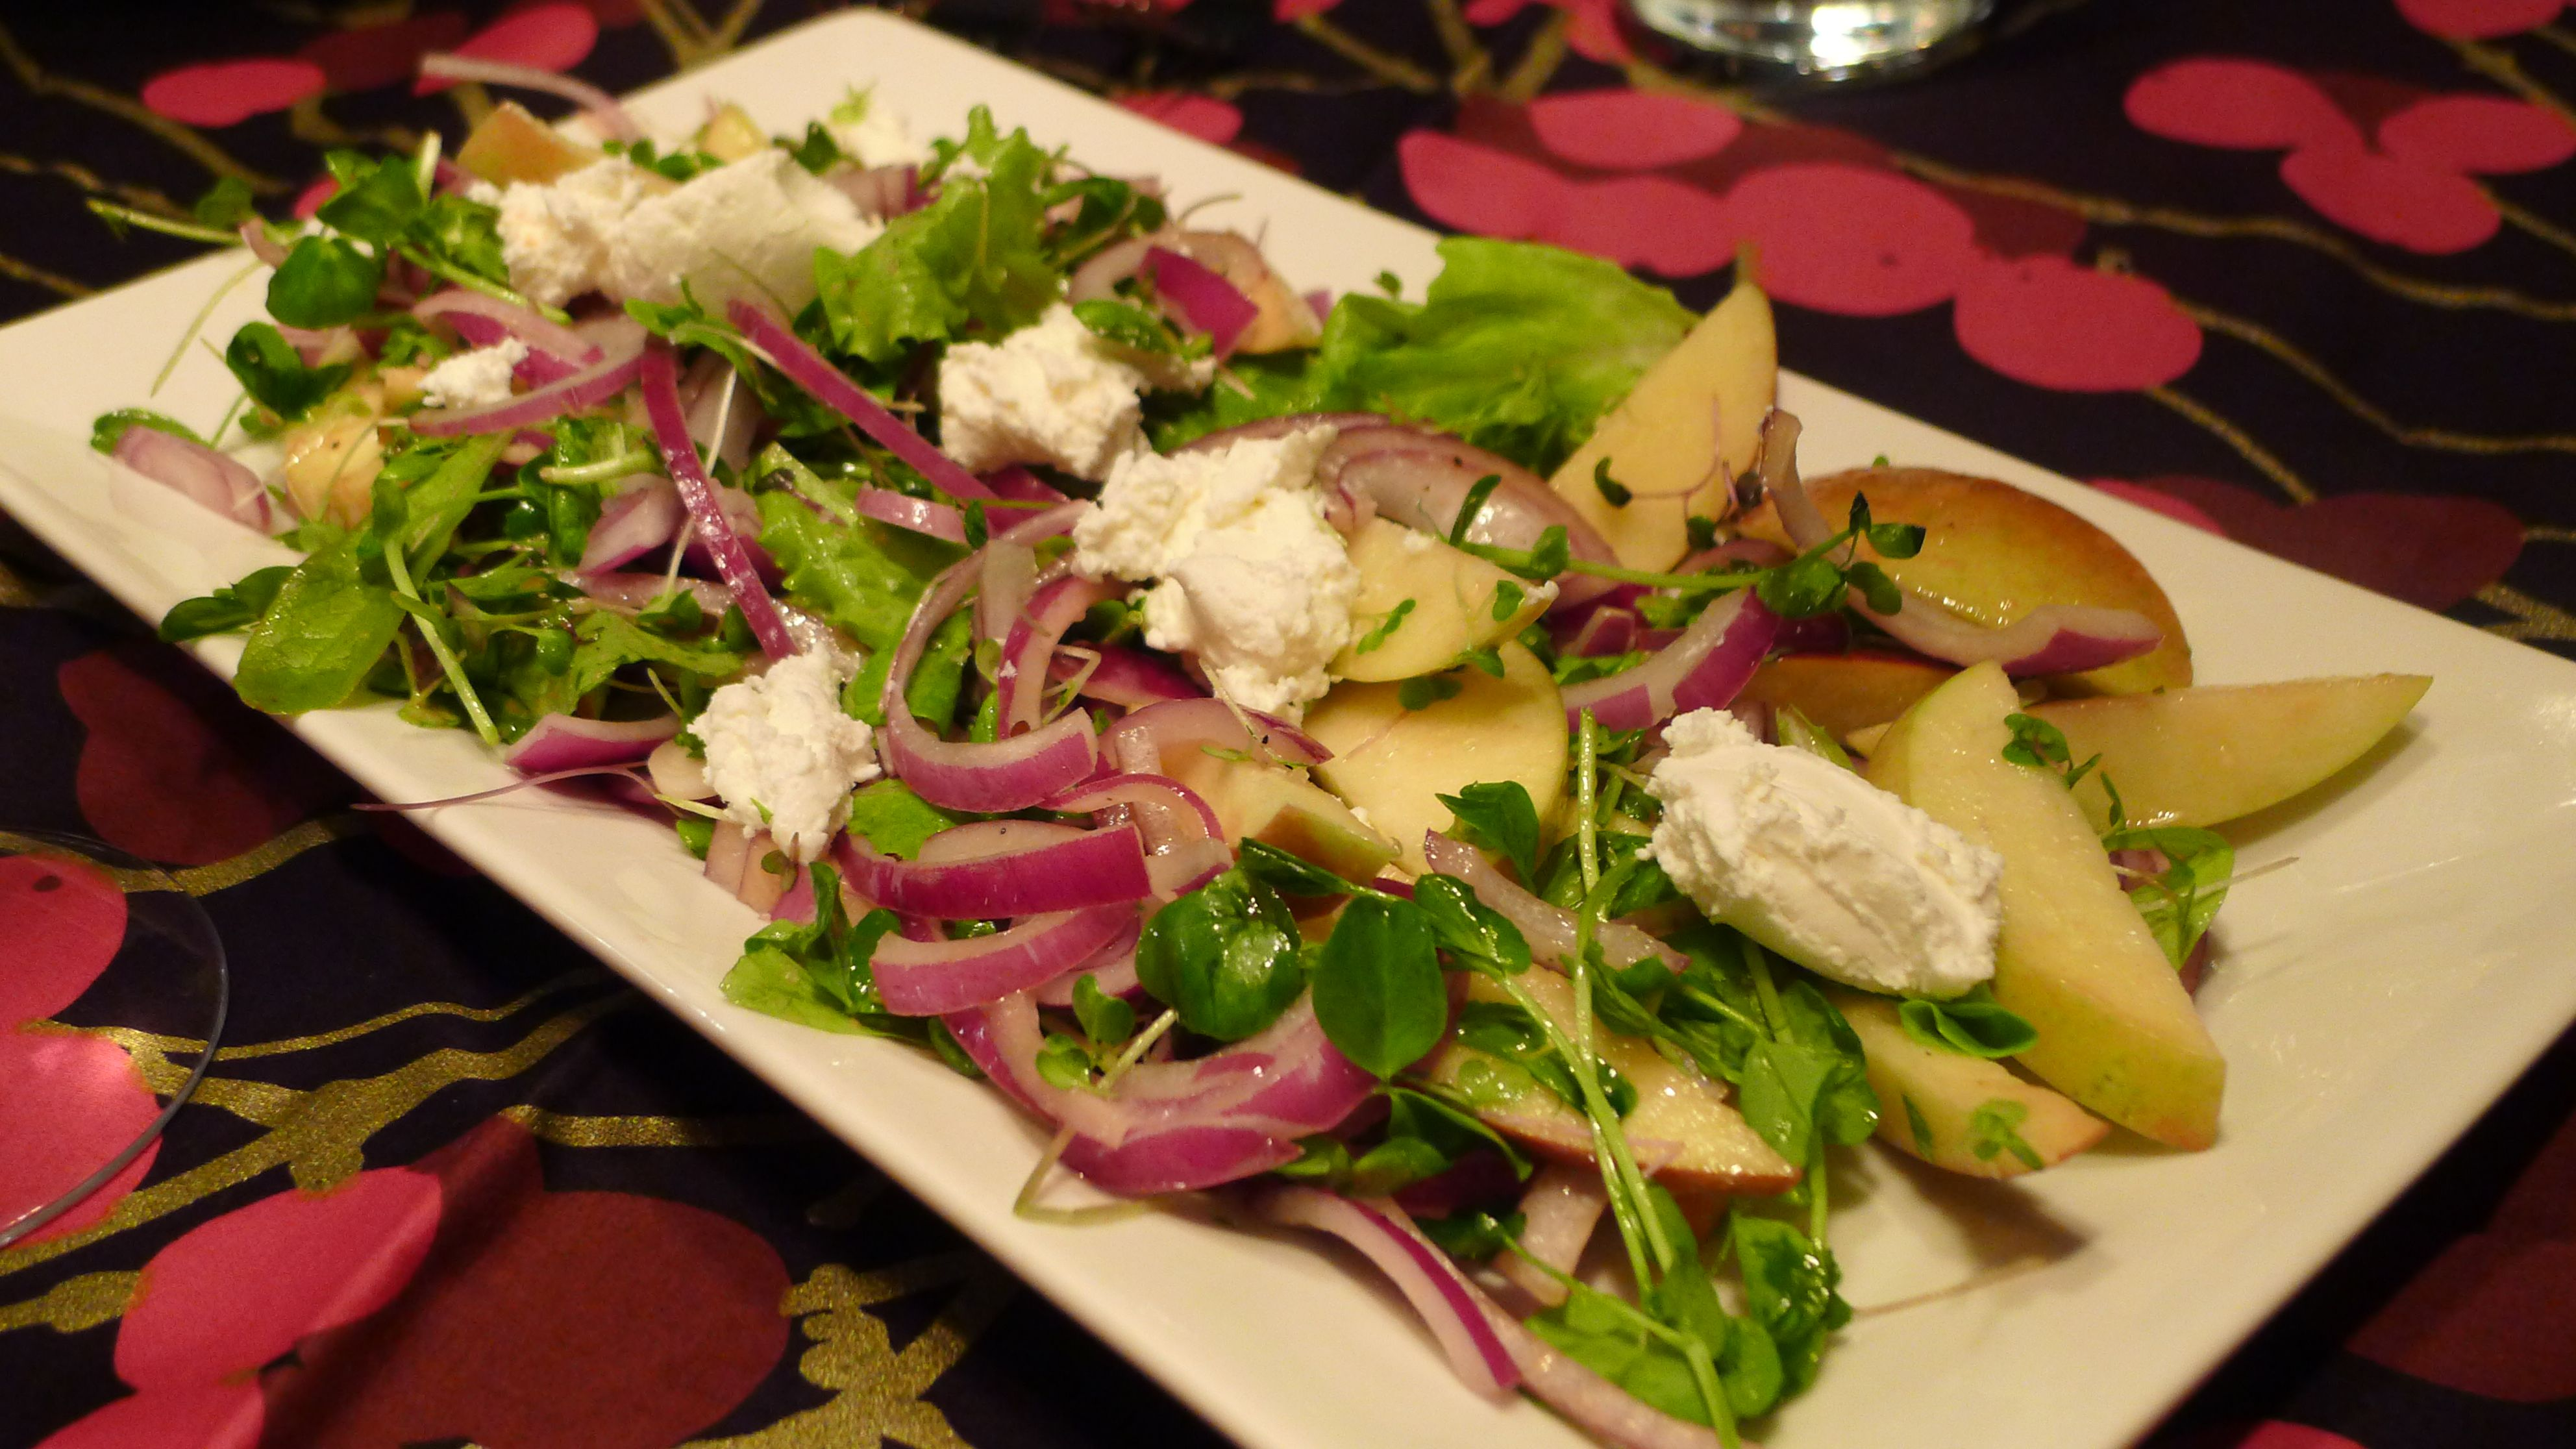 Interim Salad with Apples Red Onion and Goat Cheese Itu0027s So Hard to Say Goodbye to Cold Storage Fruits and Vegetables & Interim Salad with Apples Red Onion and Goat Cheese: Itu0027s So Hard ...